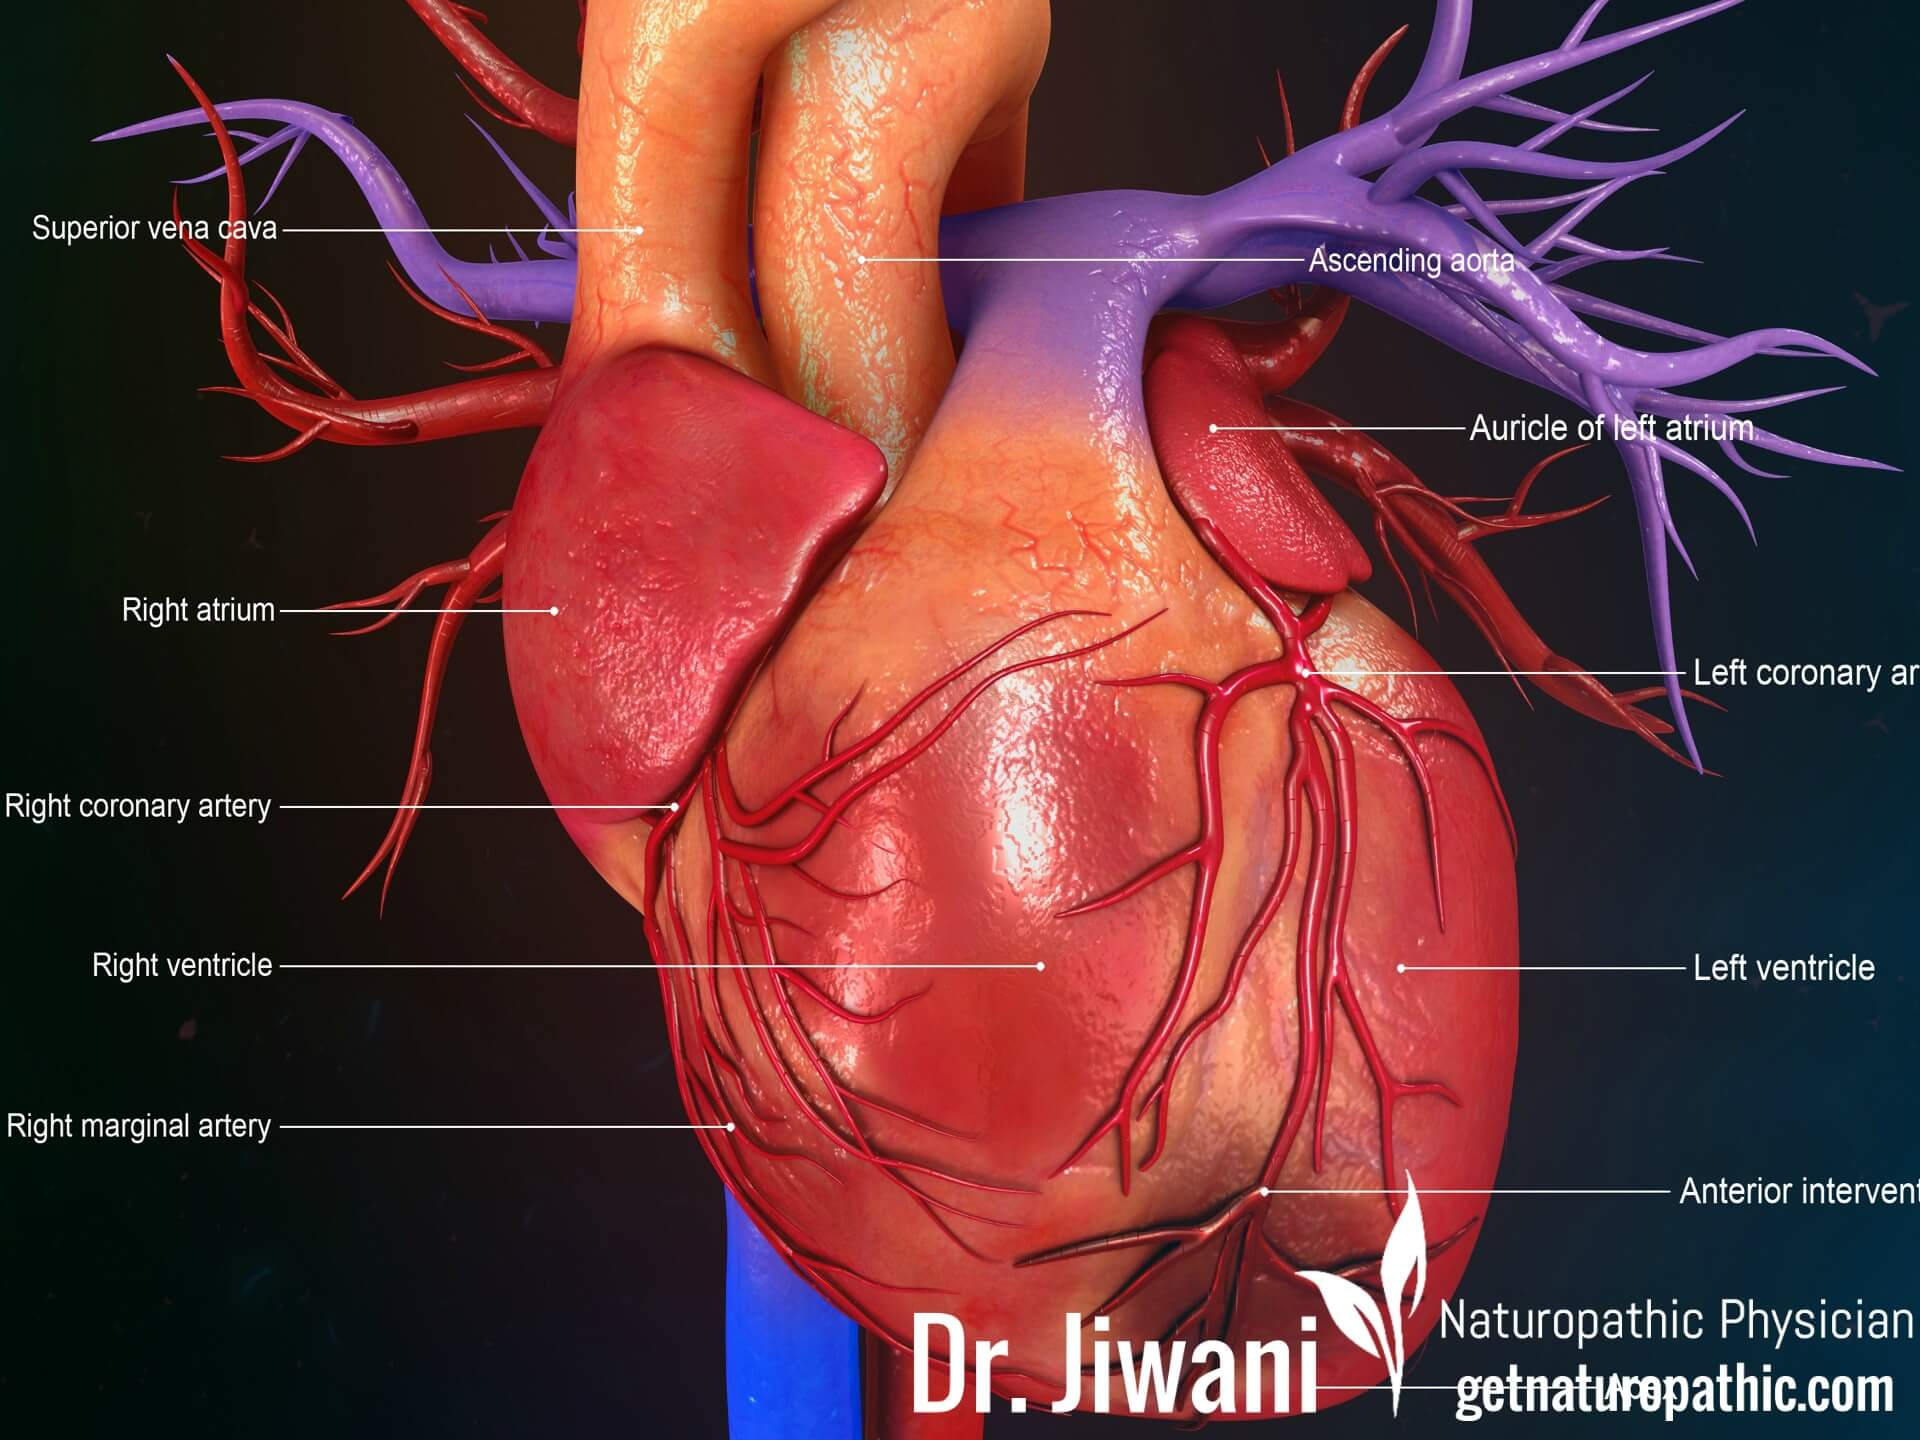 Calcium Supplements May Be Guilty of Causing Heart Attacks & Breast Cancer   Dr. Jiwani's Naturopathic Nuggets Blog